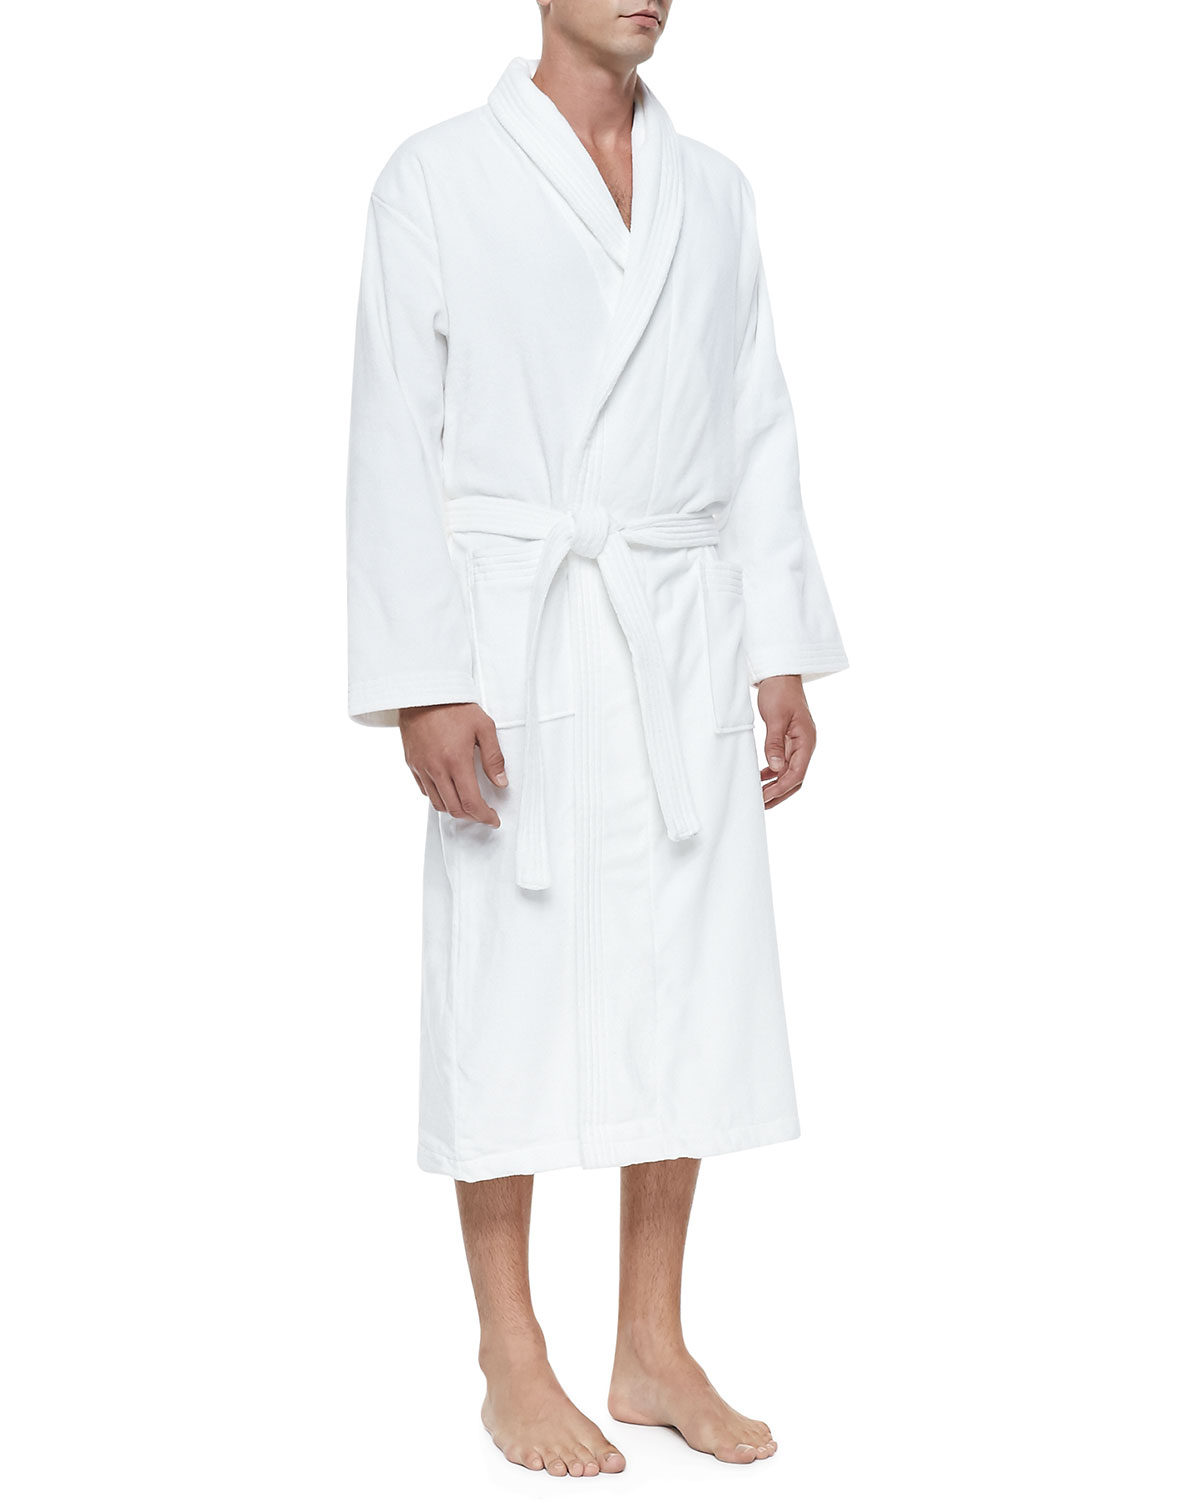 derek rose terry cloth robe in white lyst. Black Bedroom Furniture Sets. Home Design Ideas